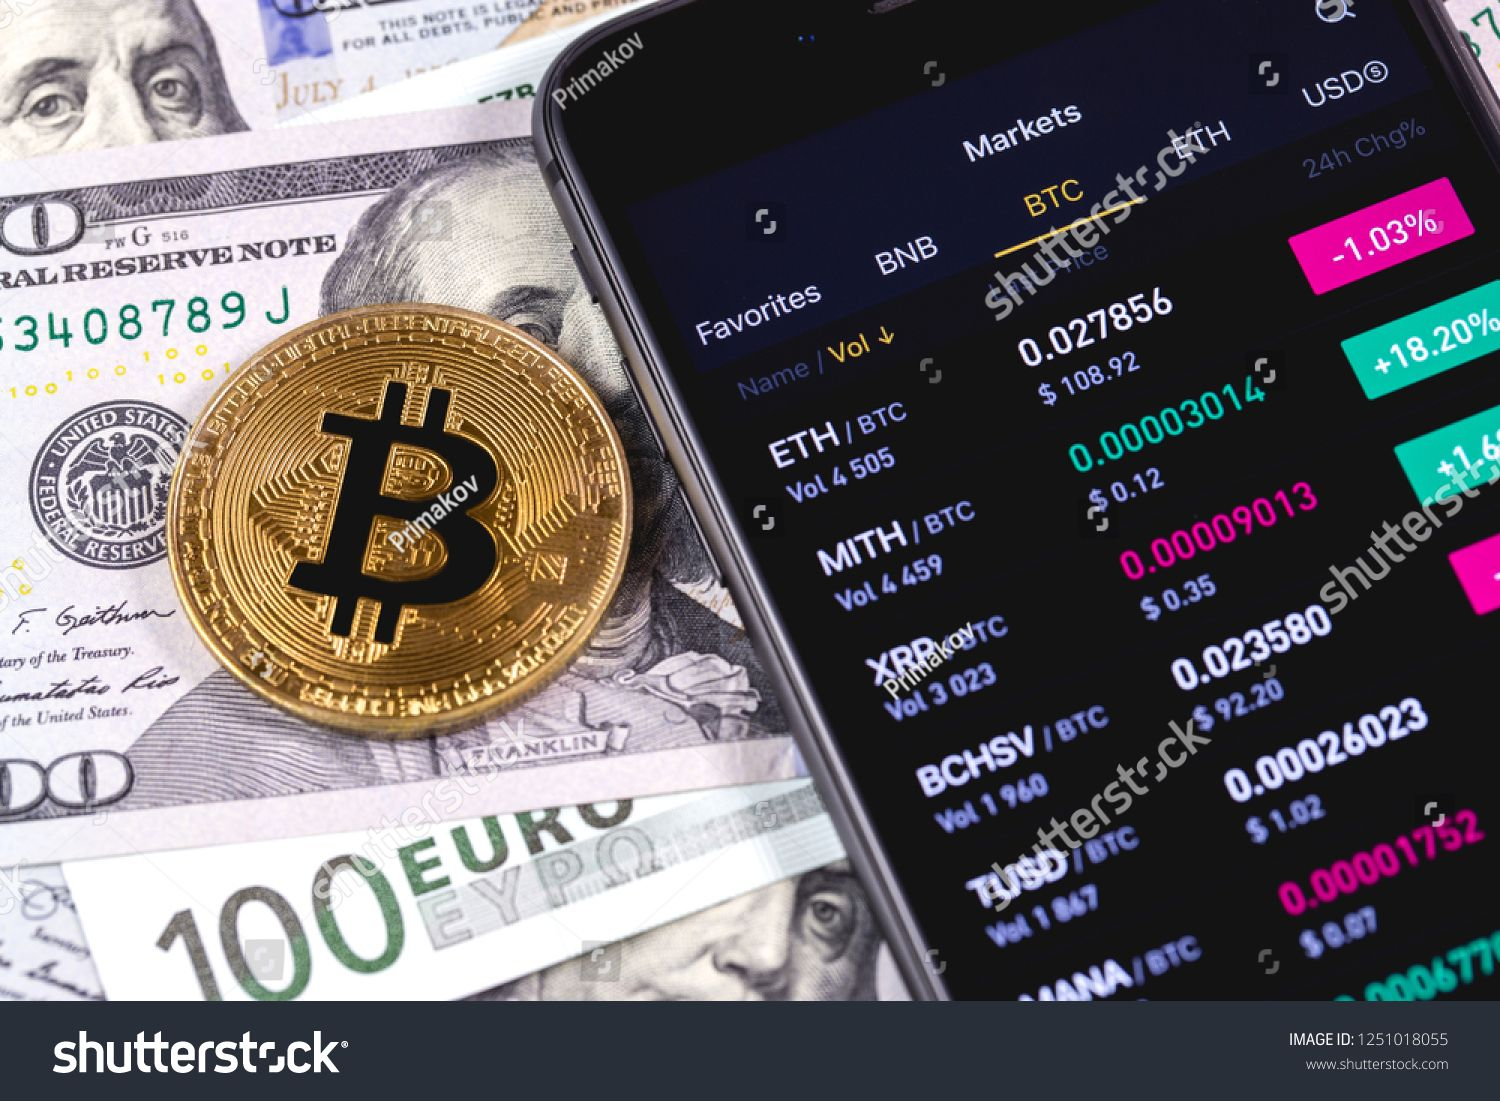 cryptocurrency on the stock market